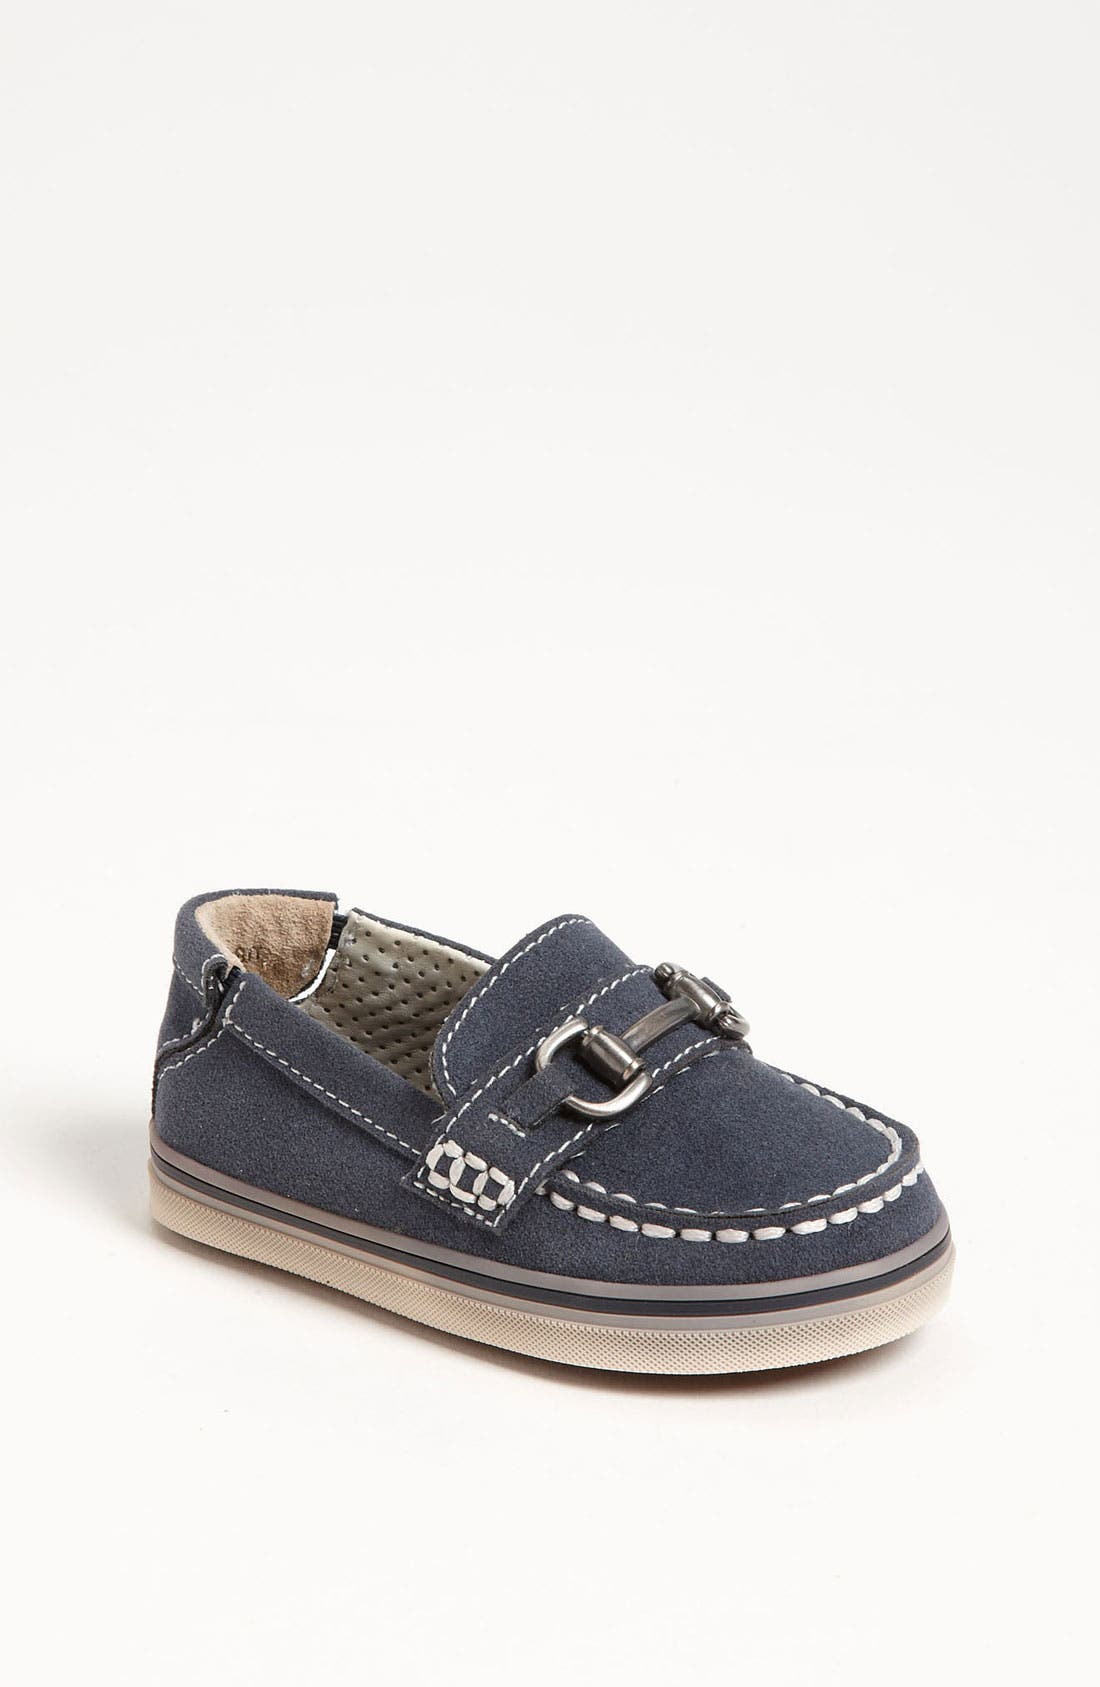 Alternate Image 1 Selected - Cole Haan 'Mini Cory' Slip-On (Baby & Walker)